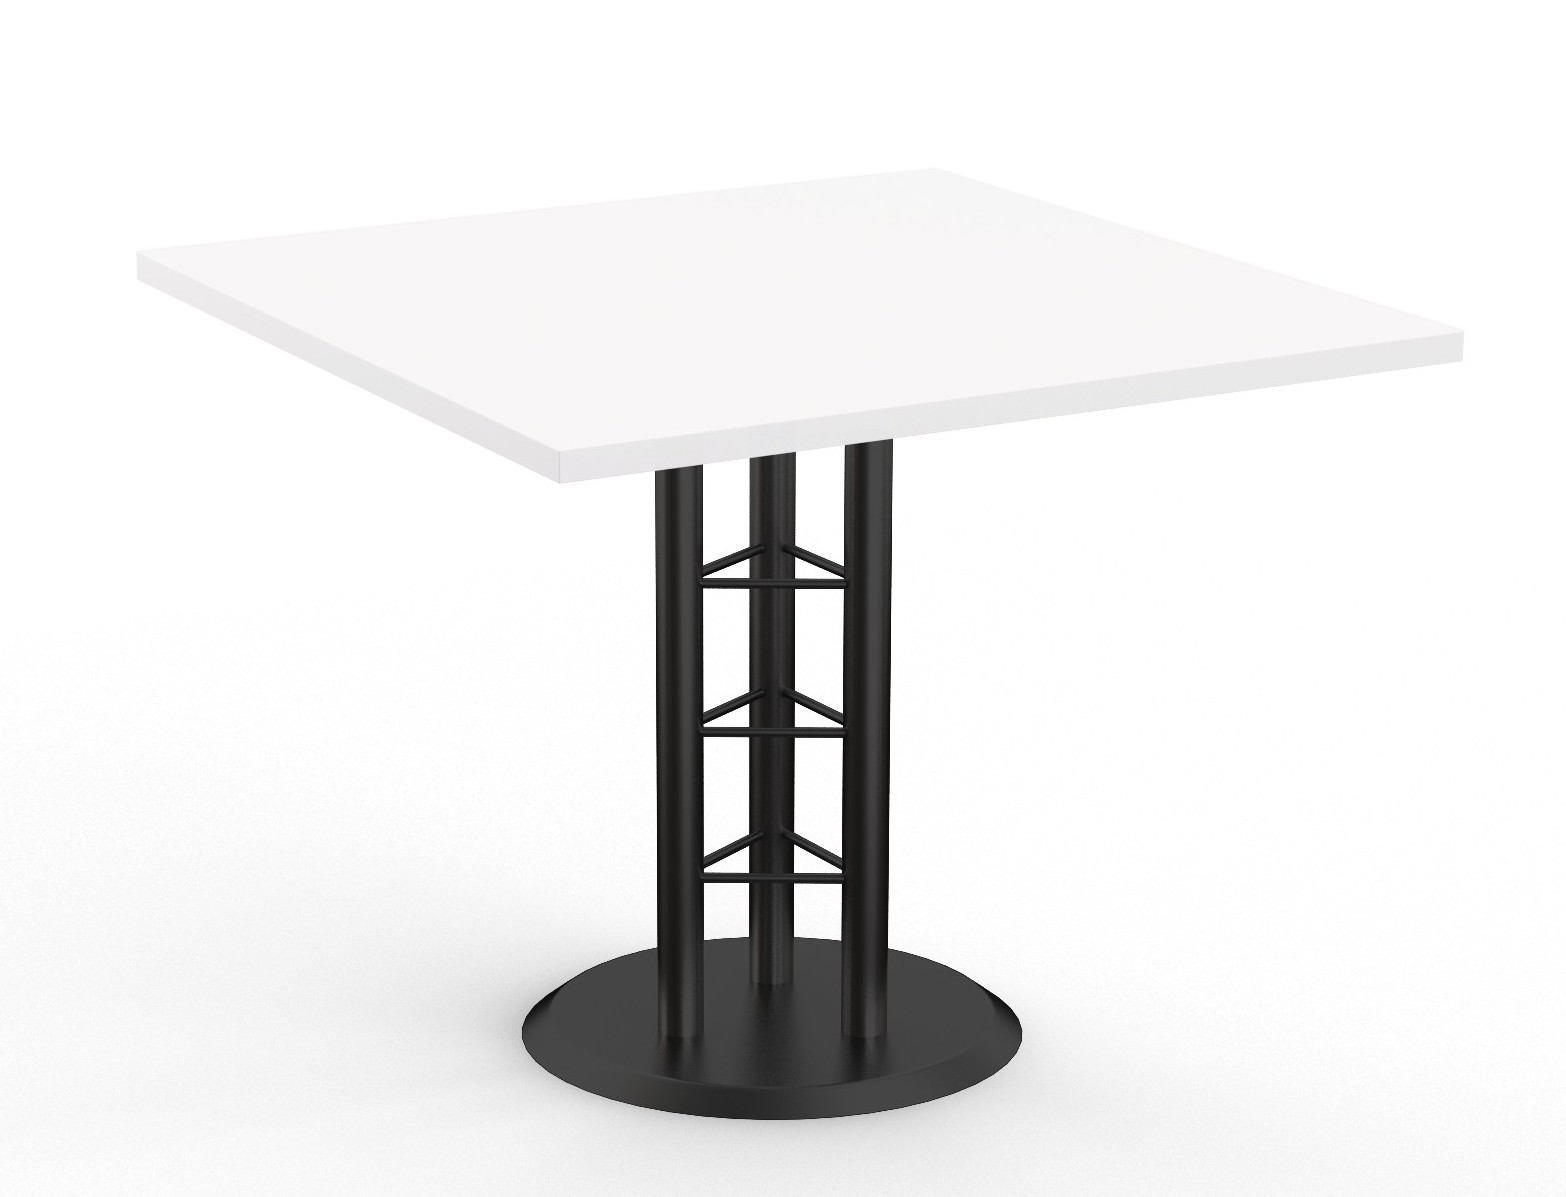 special-t success table in white